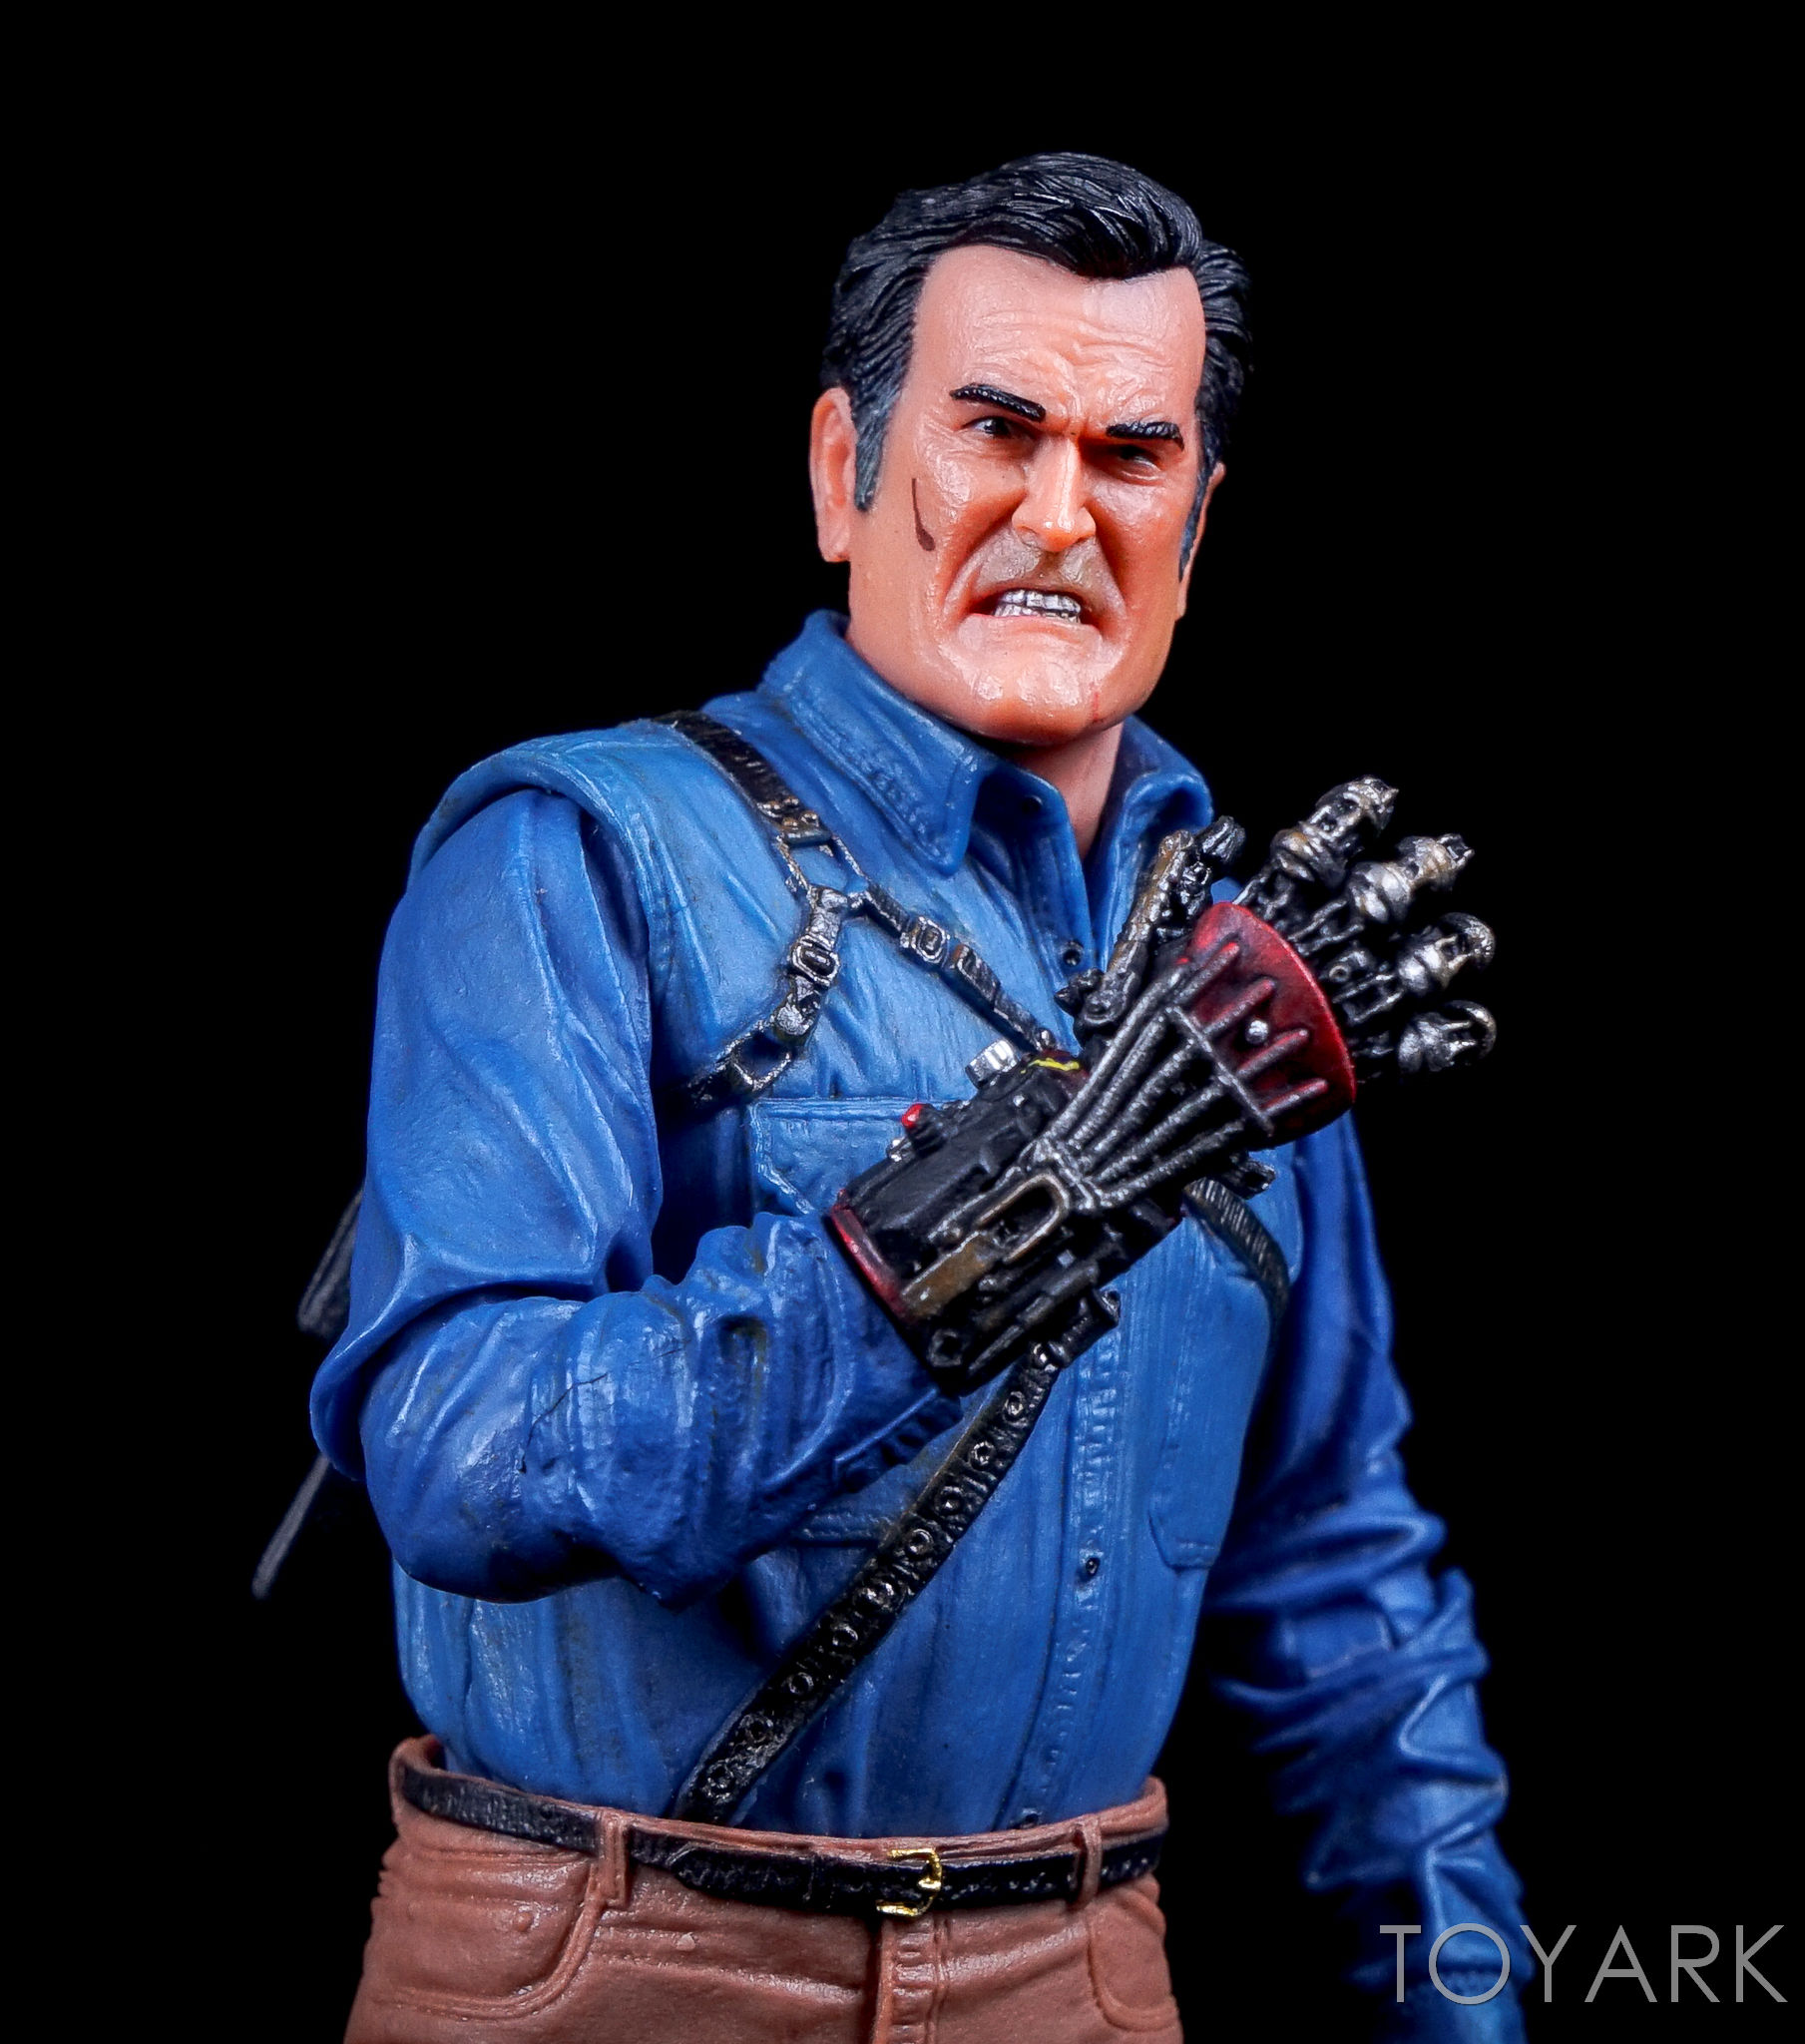 http://news.toyark.com/wp-content/uploads/sites/4/2016/09/Ash-vs-Evil-Dead-Series-1-NECA-111.jpg